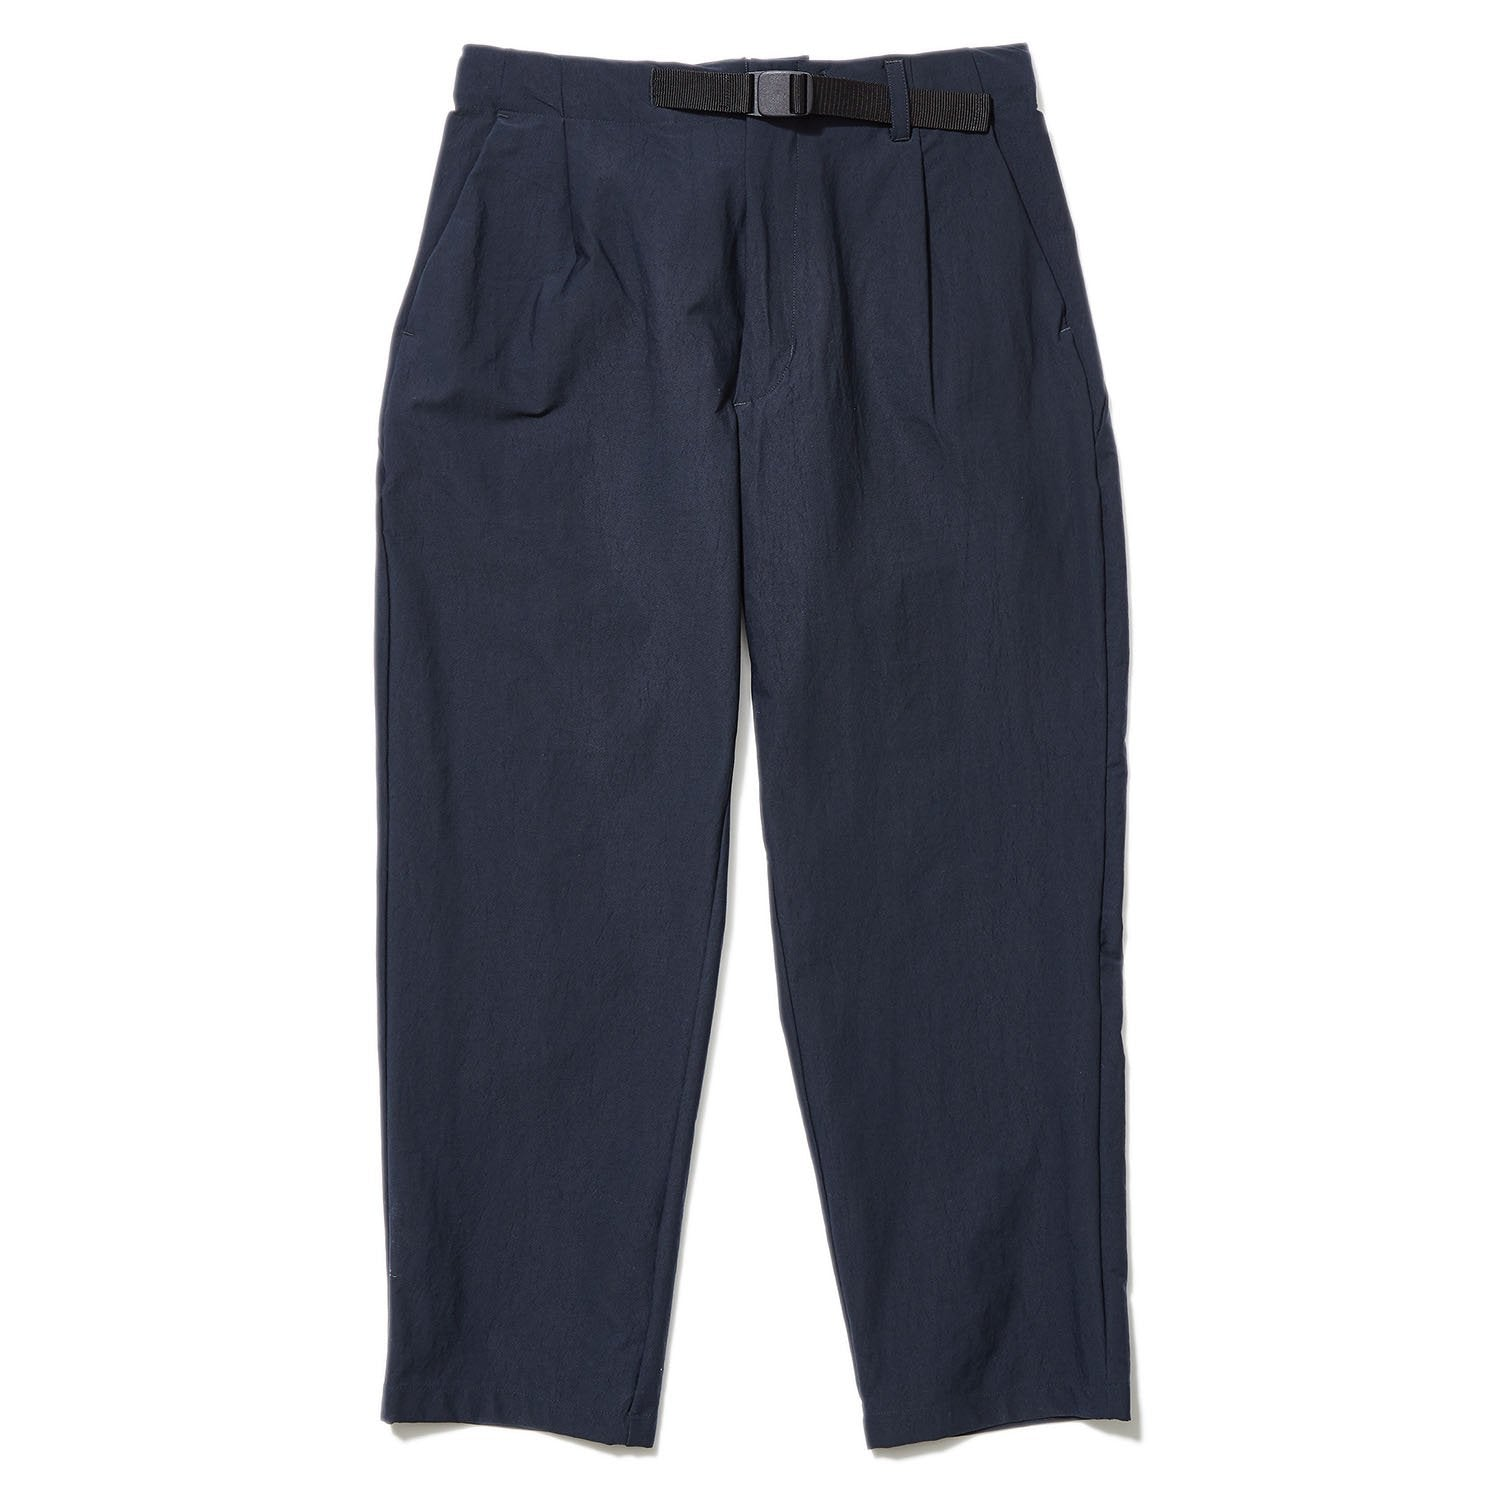 ONE TUCK TAPERED STRETCH TROUSERS DARK NAVY